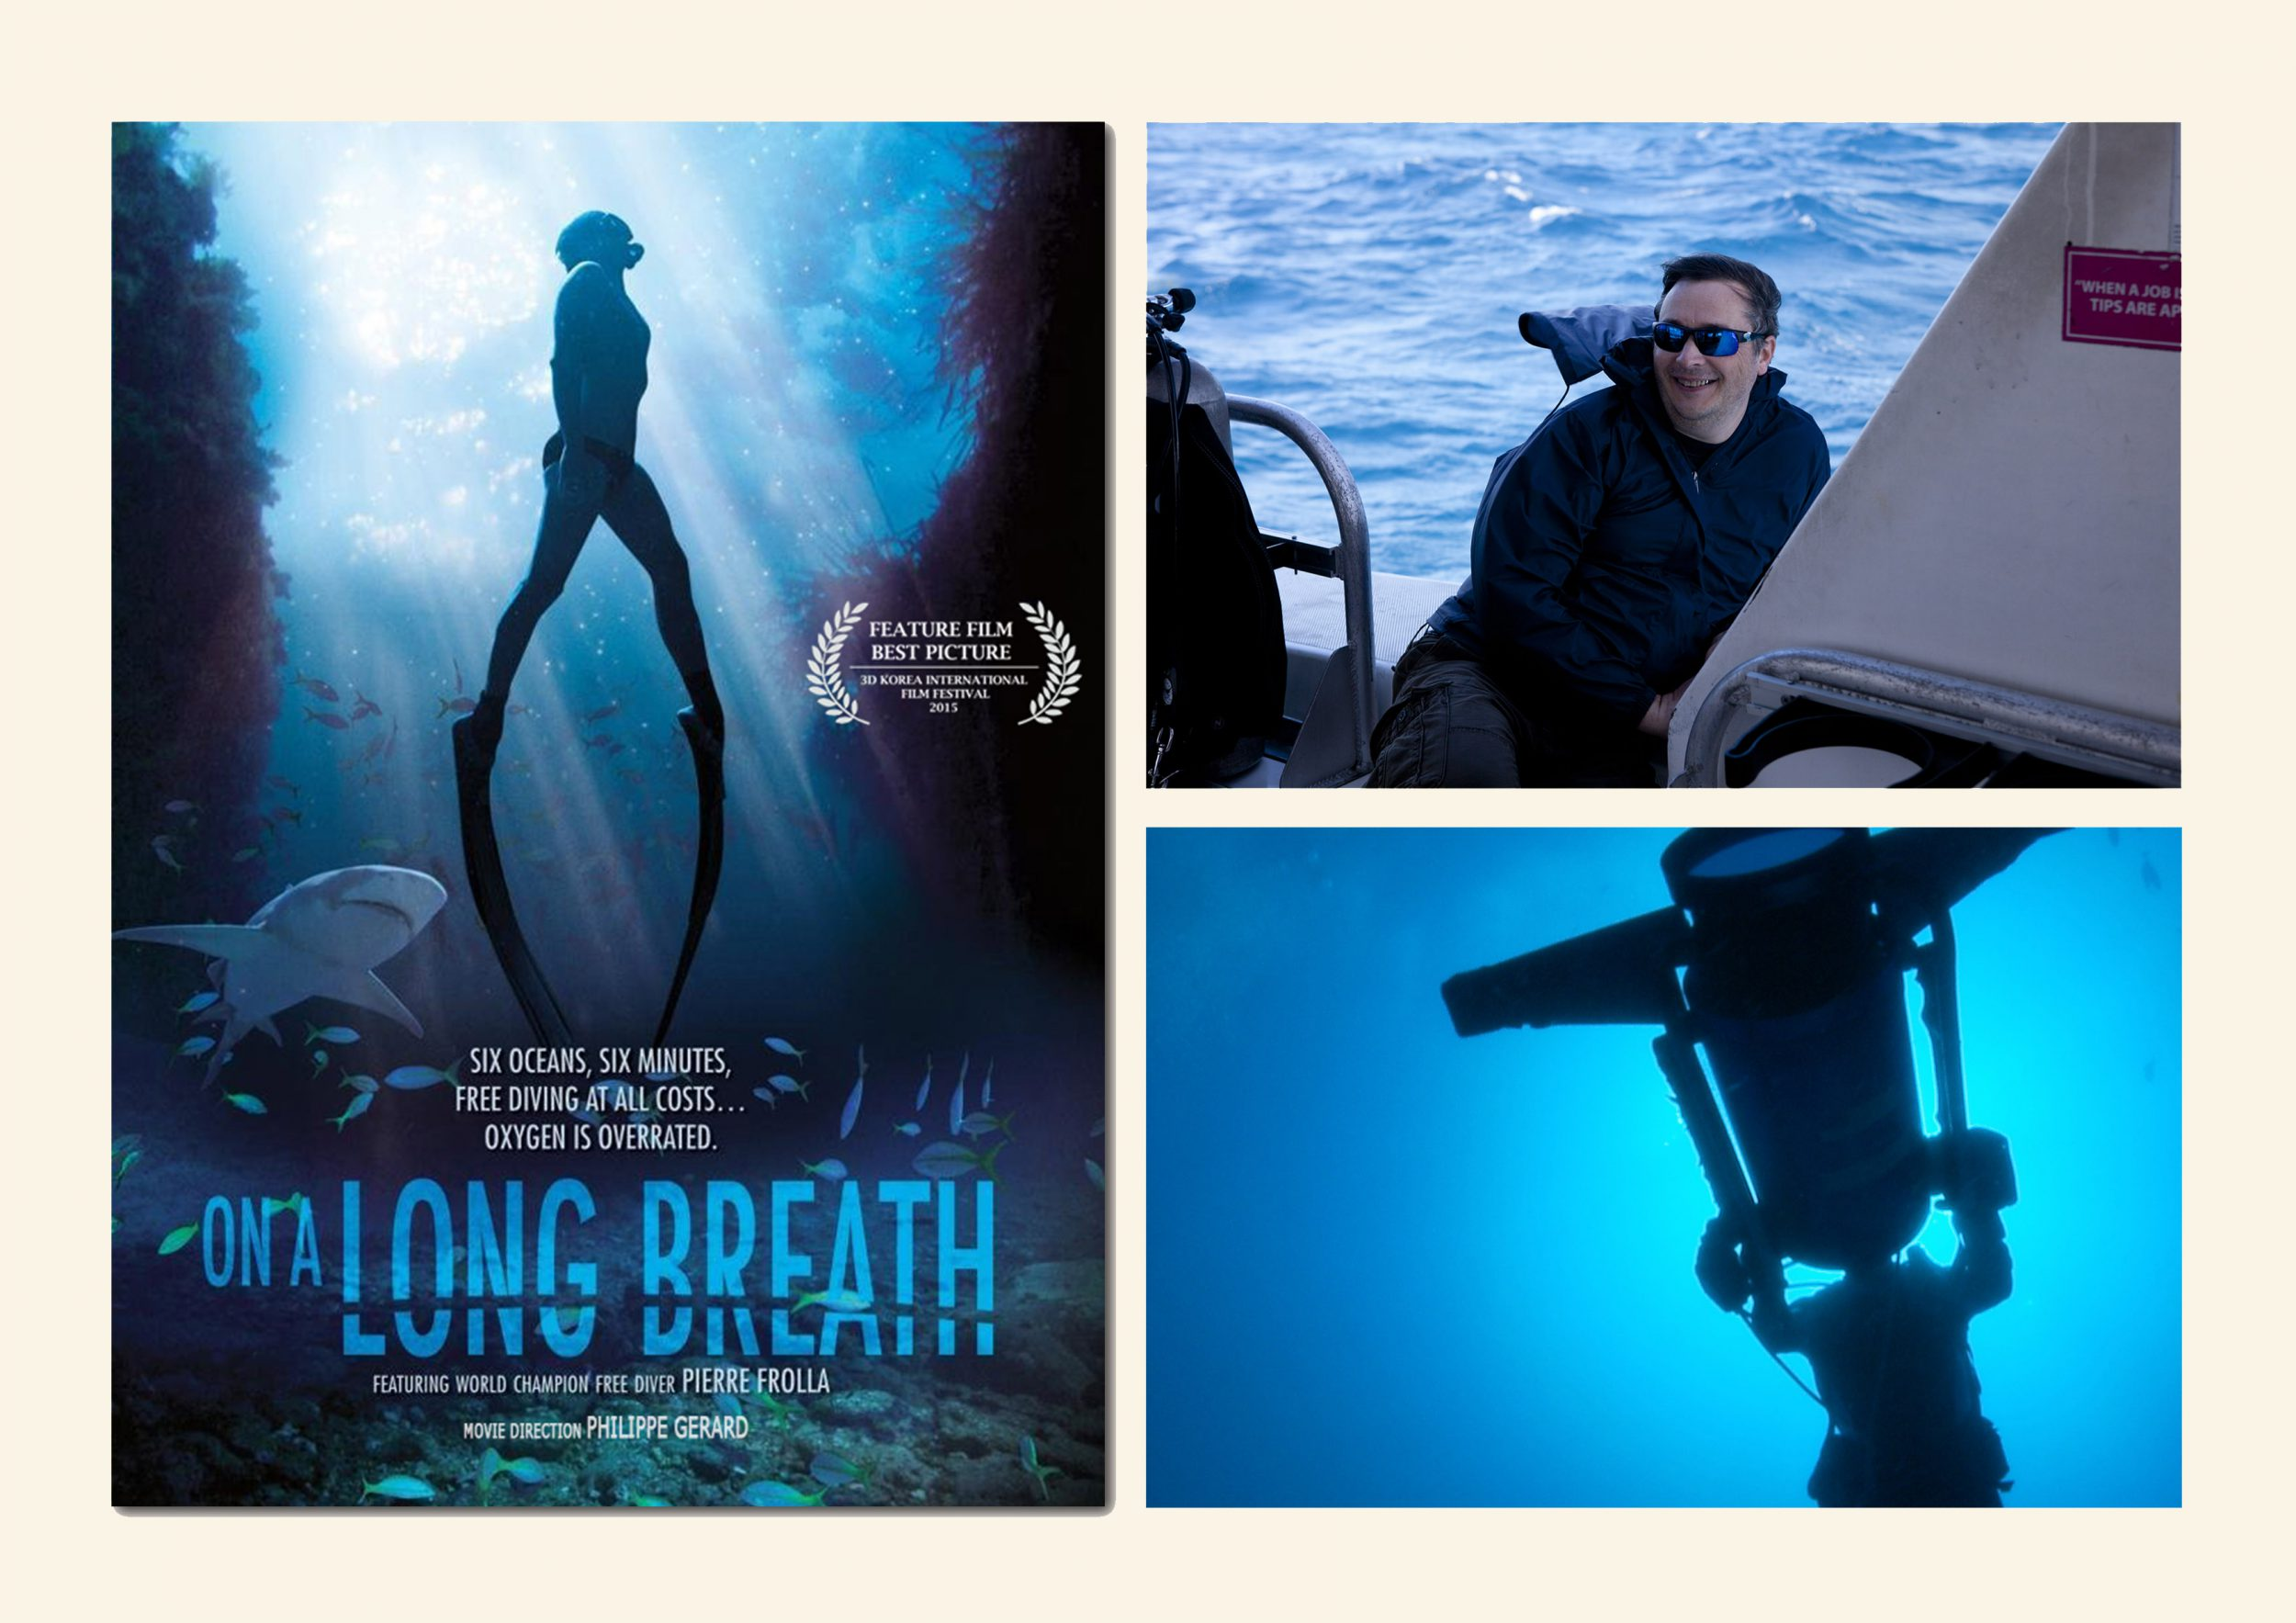 Clockwise from left: On A Long Breath film cover, Philippe Gerard director, behind the scenes underwater still.